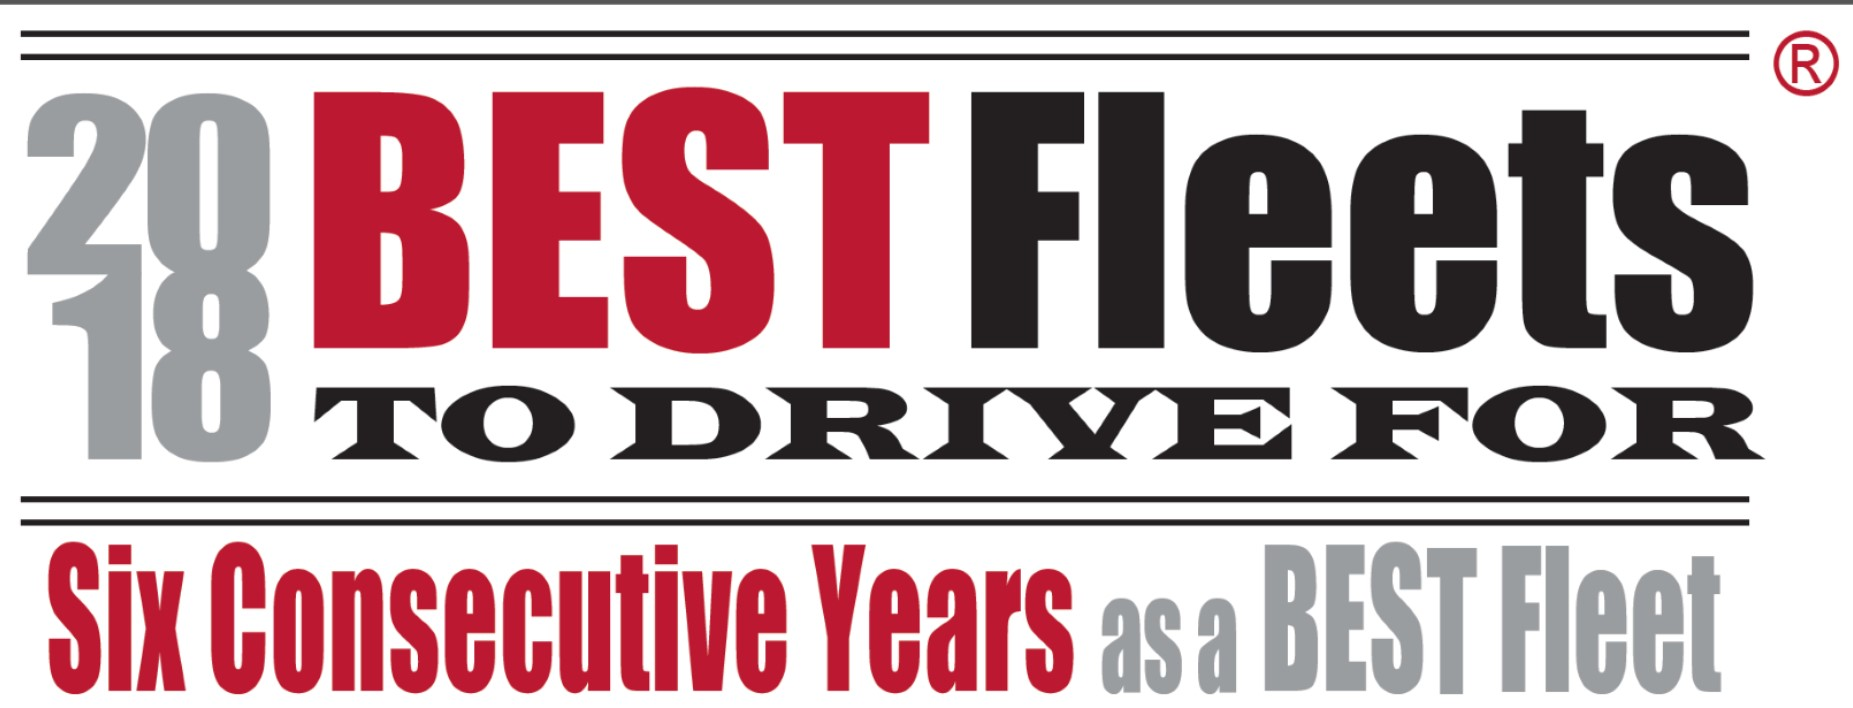 Logo, 2018 Best Fleets to Drive For, 6 Consecutive Years as a Best Fleet